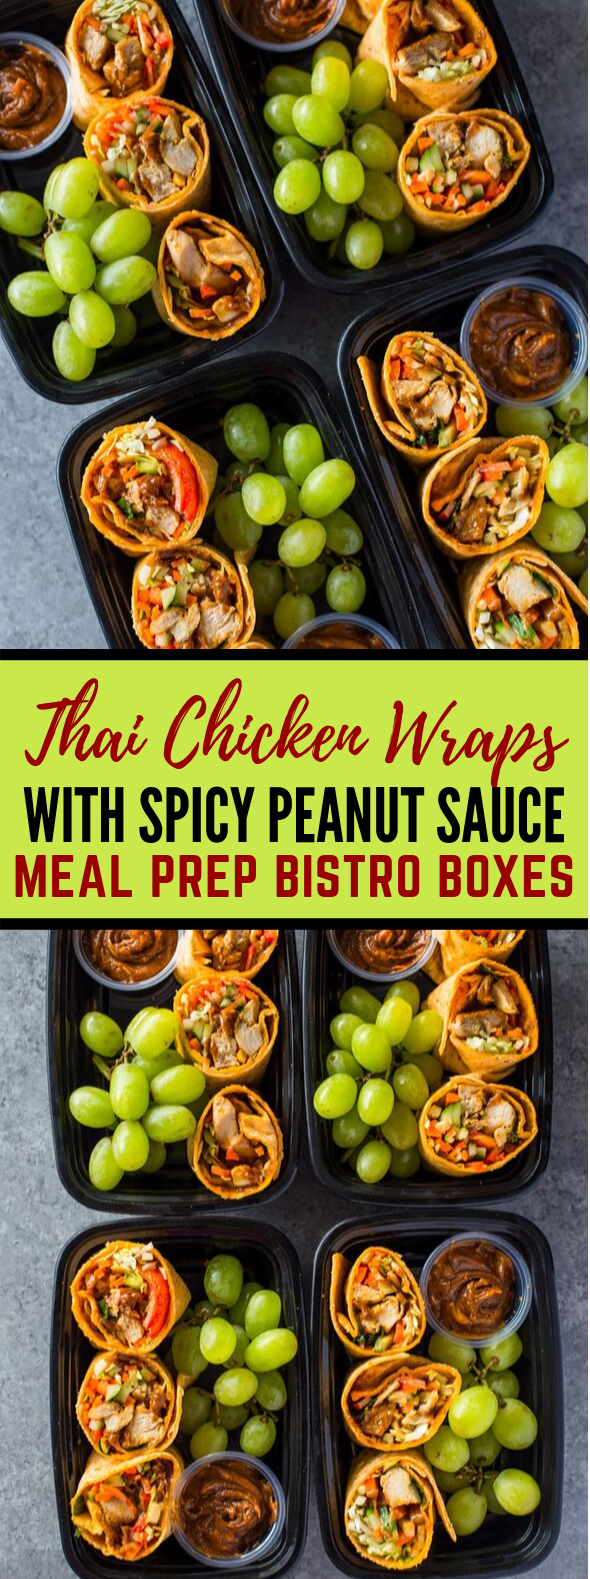 THAI CHICKEN WRAPS MEAL-PREP BISTRO BOXES #healthylunch #dietfood